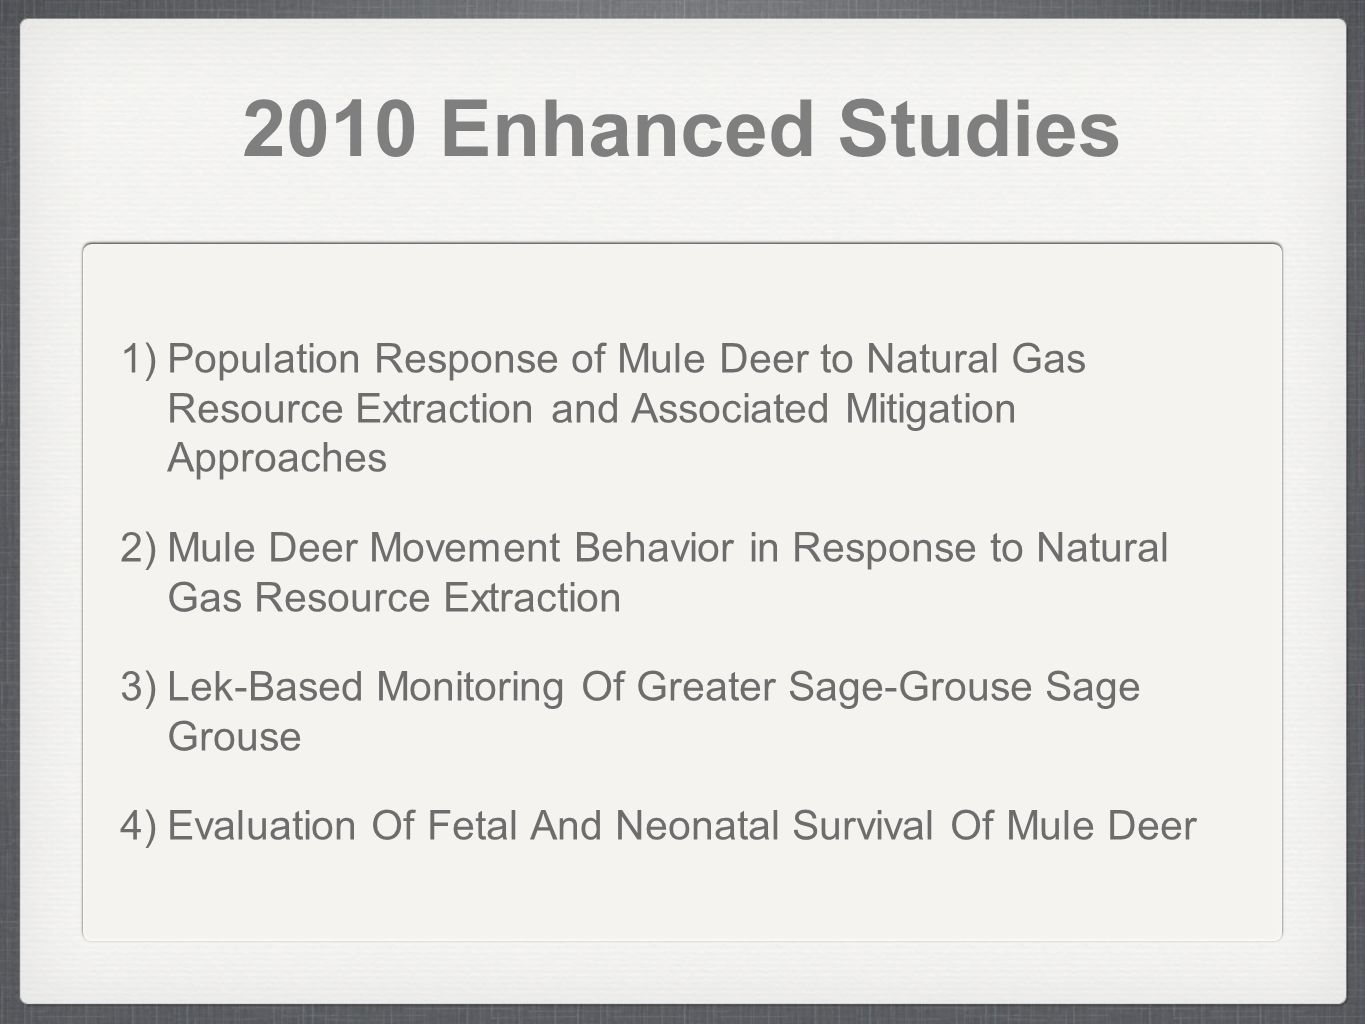 2010 Enhanced Studies 1) Population Response of Mule Deer to Natural Gas Resource Extraction and Associated Mitigation Approaches 2) Mule Deer Movement Behavior in Response to Natural Gas Resource Extraction 3) Lek-Based Monitoring Of Greater Sage-Grouse Sage Grouse 4) Evaluation Of Fetal And Neonatal Survival Of Mule Deer